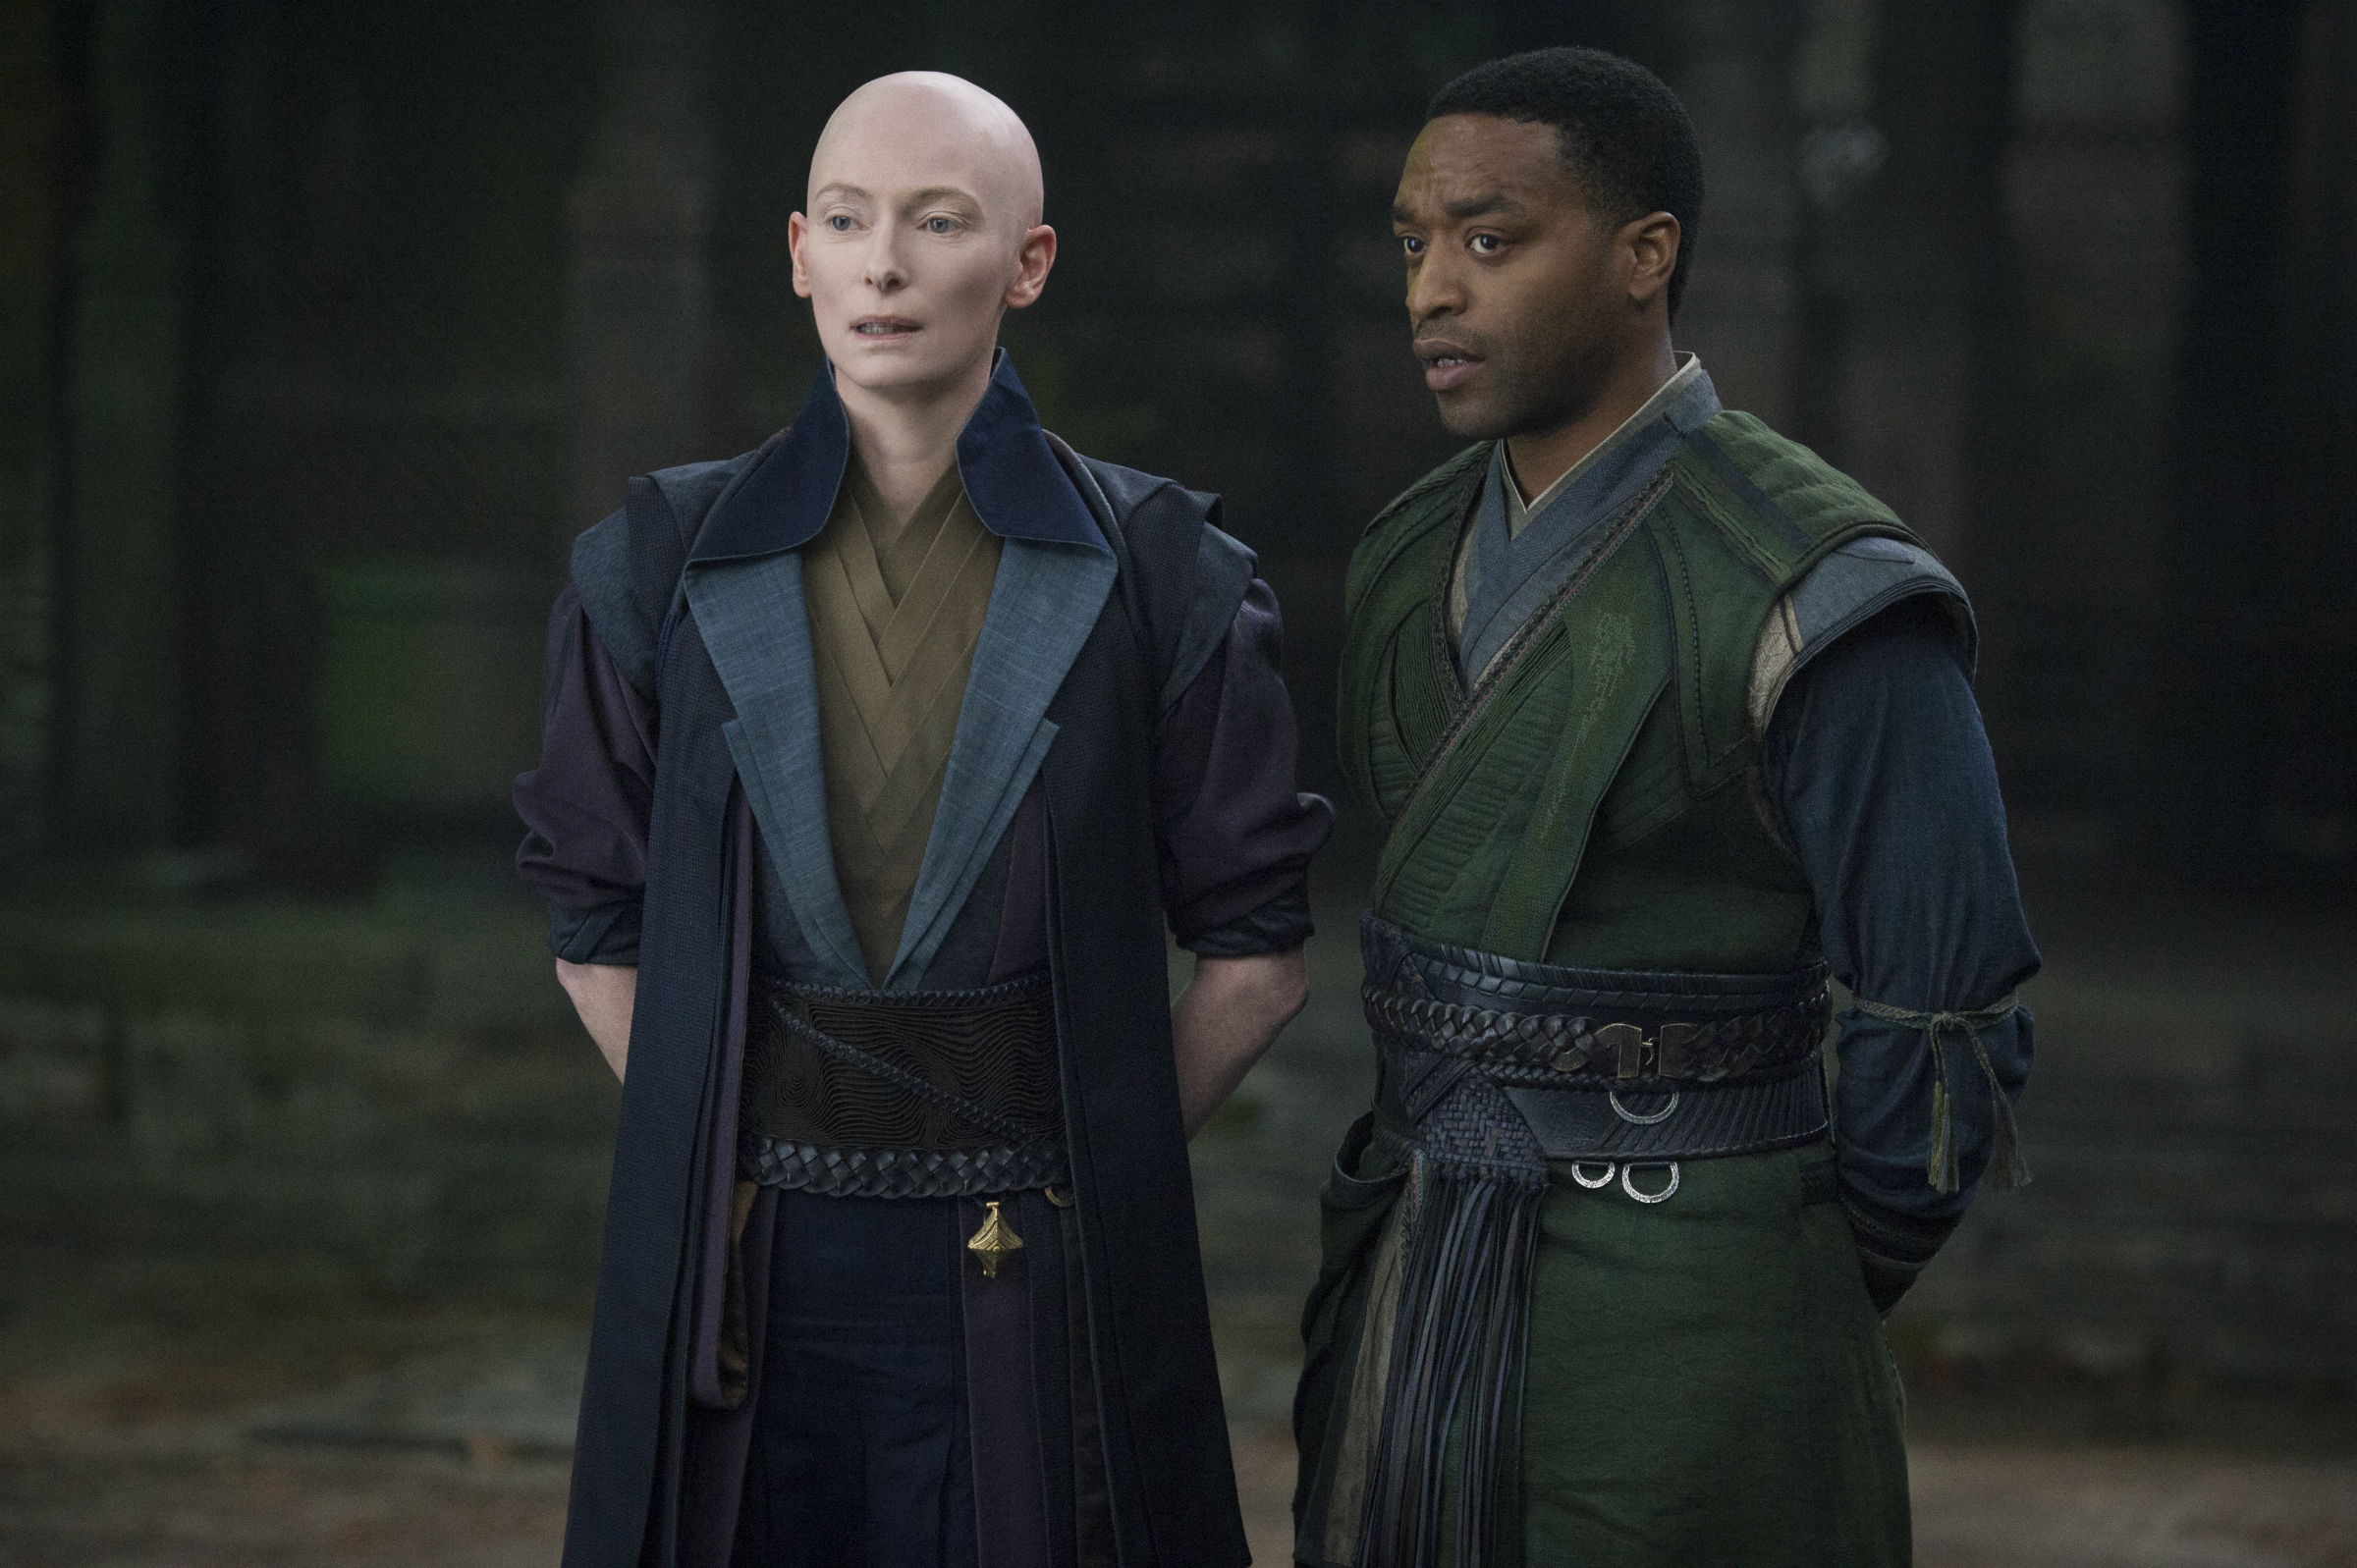 Tilda Swinton as the Ancient One, Chiwetel Ejiofor as Karl Mordo